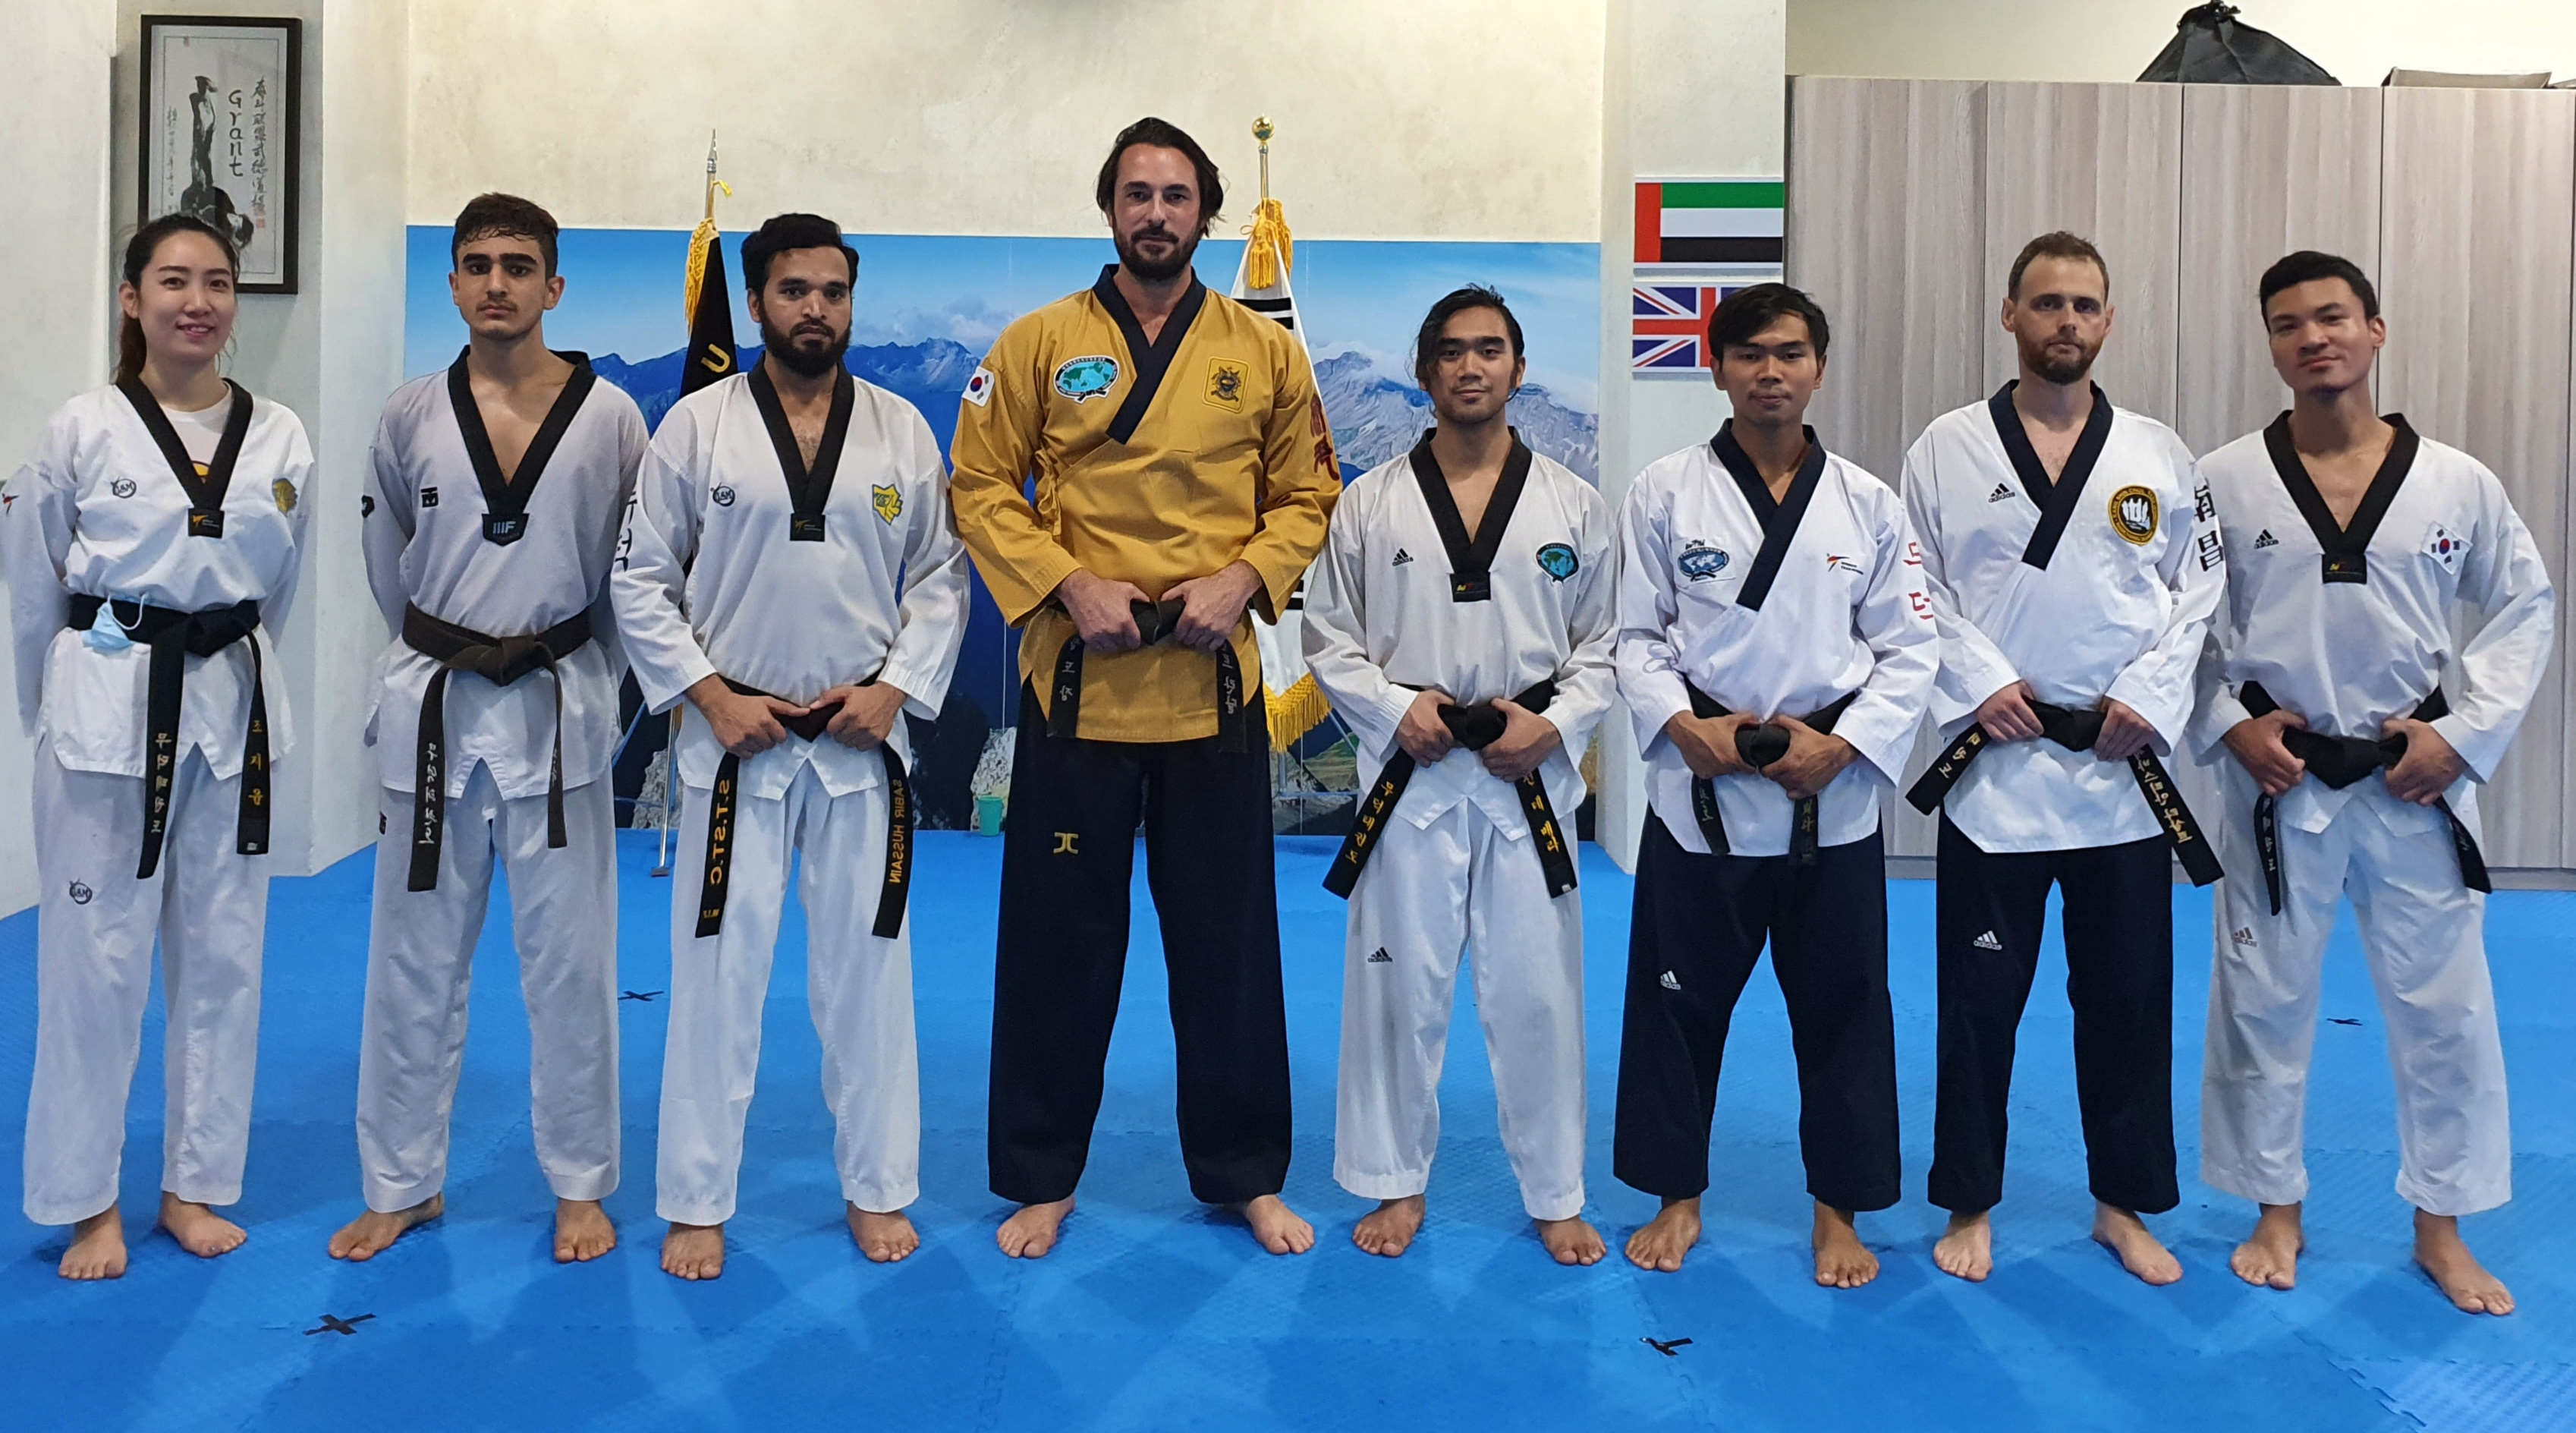 Black belts with Kwanjangnim